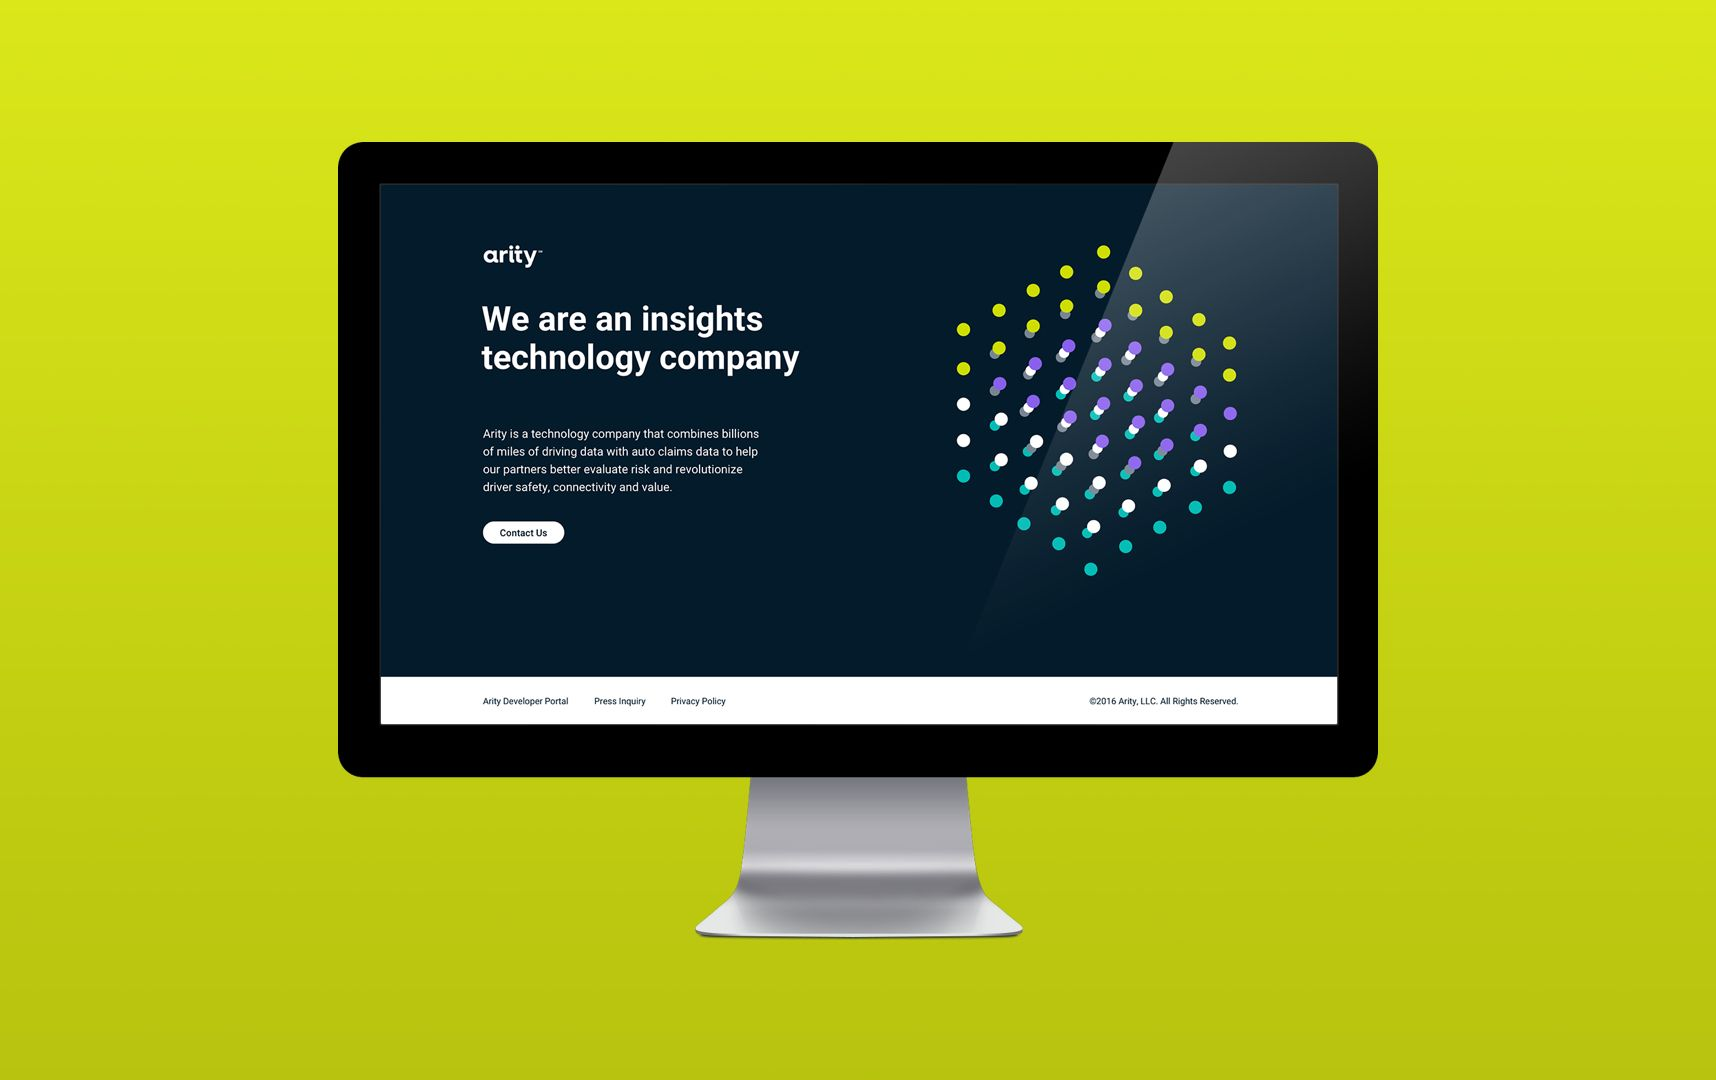 Arity website landing page design